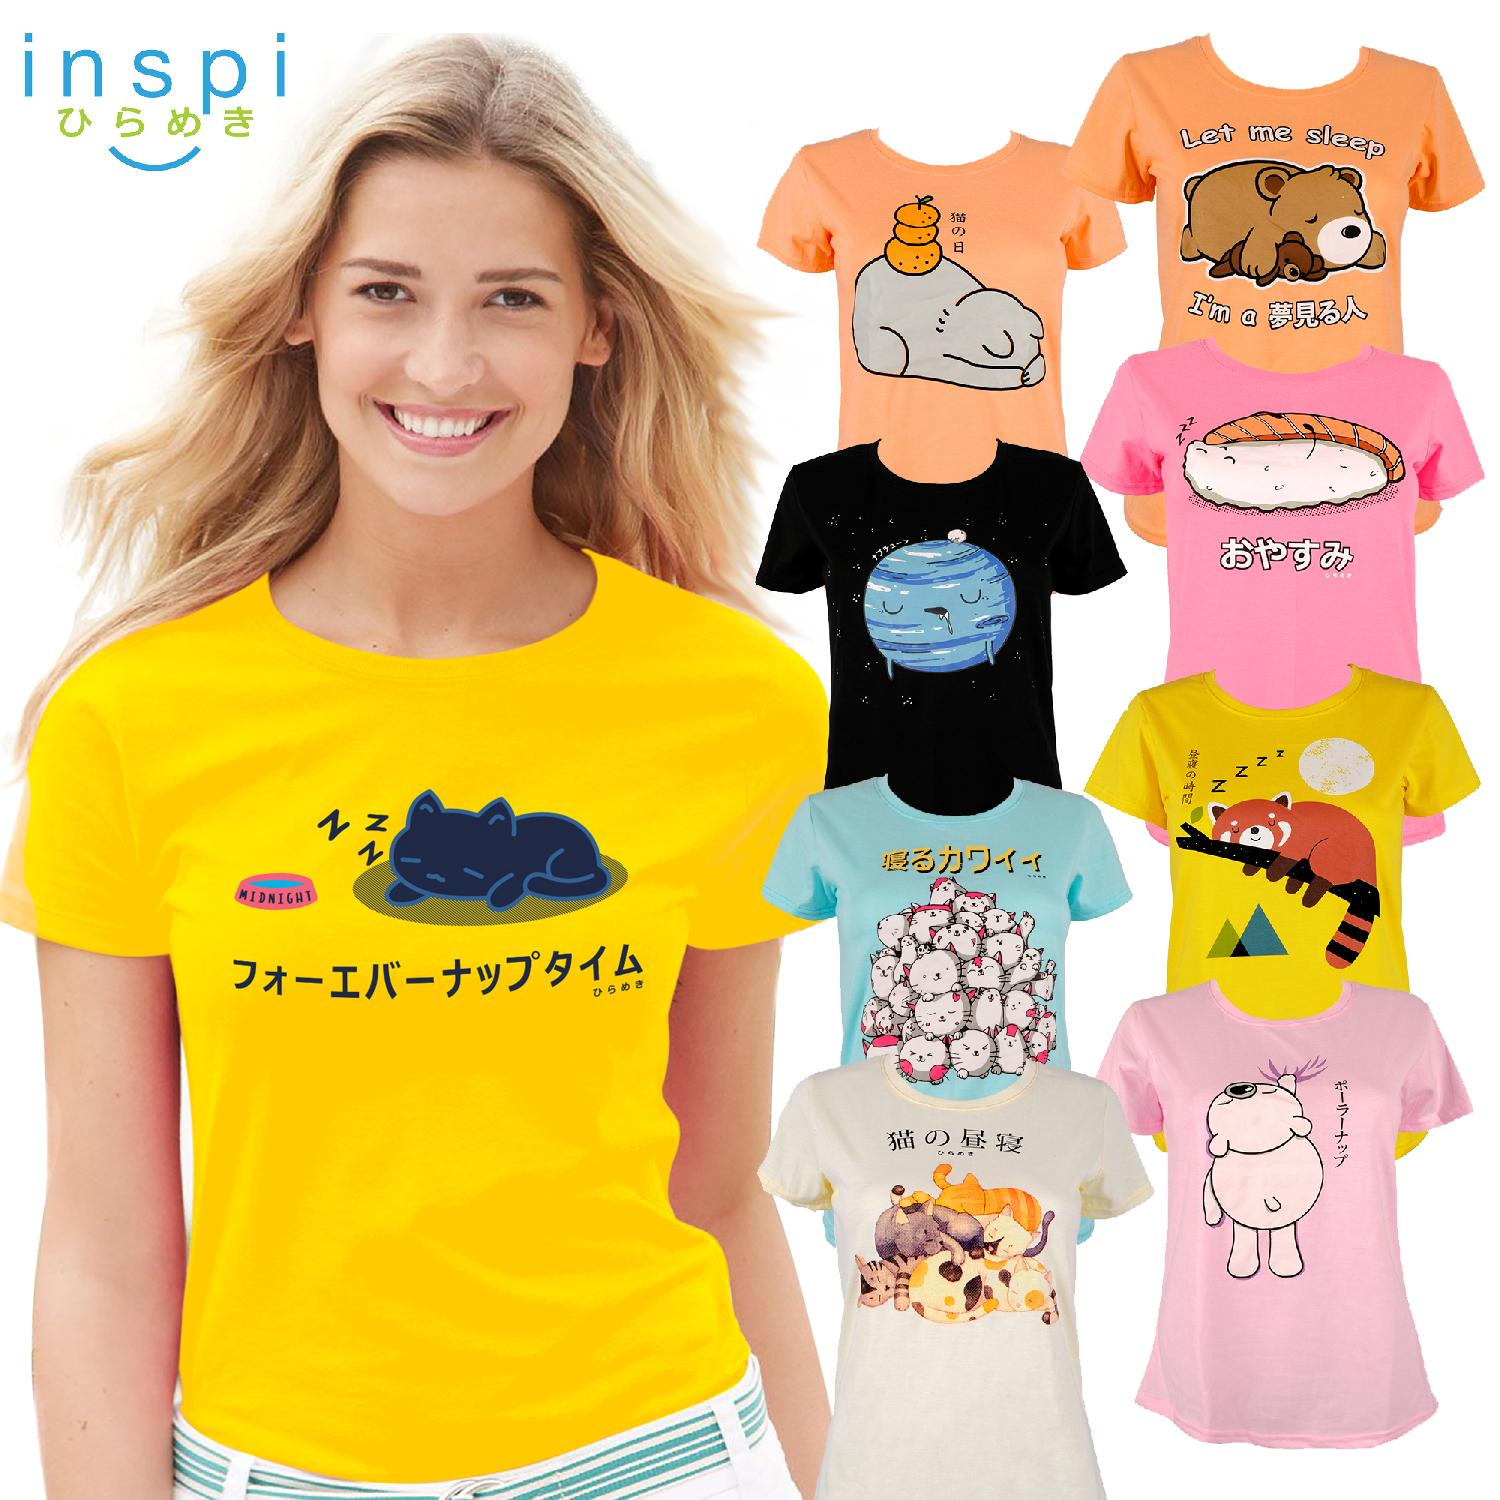 89a69d2bf6167 INSPI Tees Ladies Nap Collection tshirt printed graphic tee Ladies t shirt  shirts women tshirts for